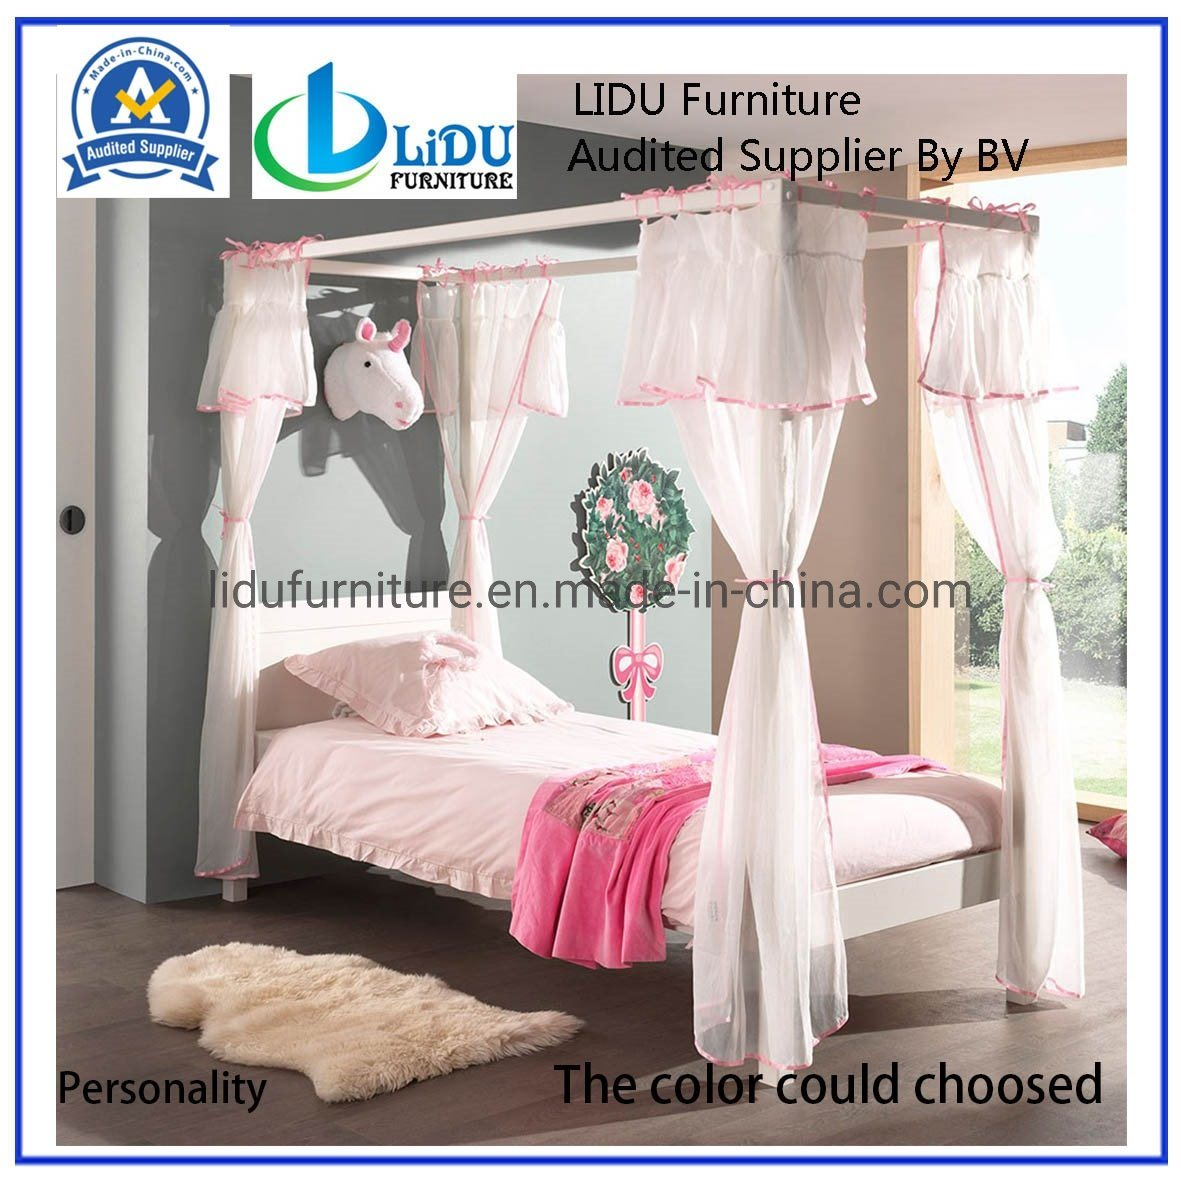 Picture of: Modern Wooden Bed Wooden Single Pine Bed Princess Bed Unique Children S Beds Compact Bunk Frame Day Bed China Wooden Bed Kid S Bed Made In China Com